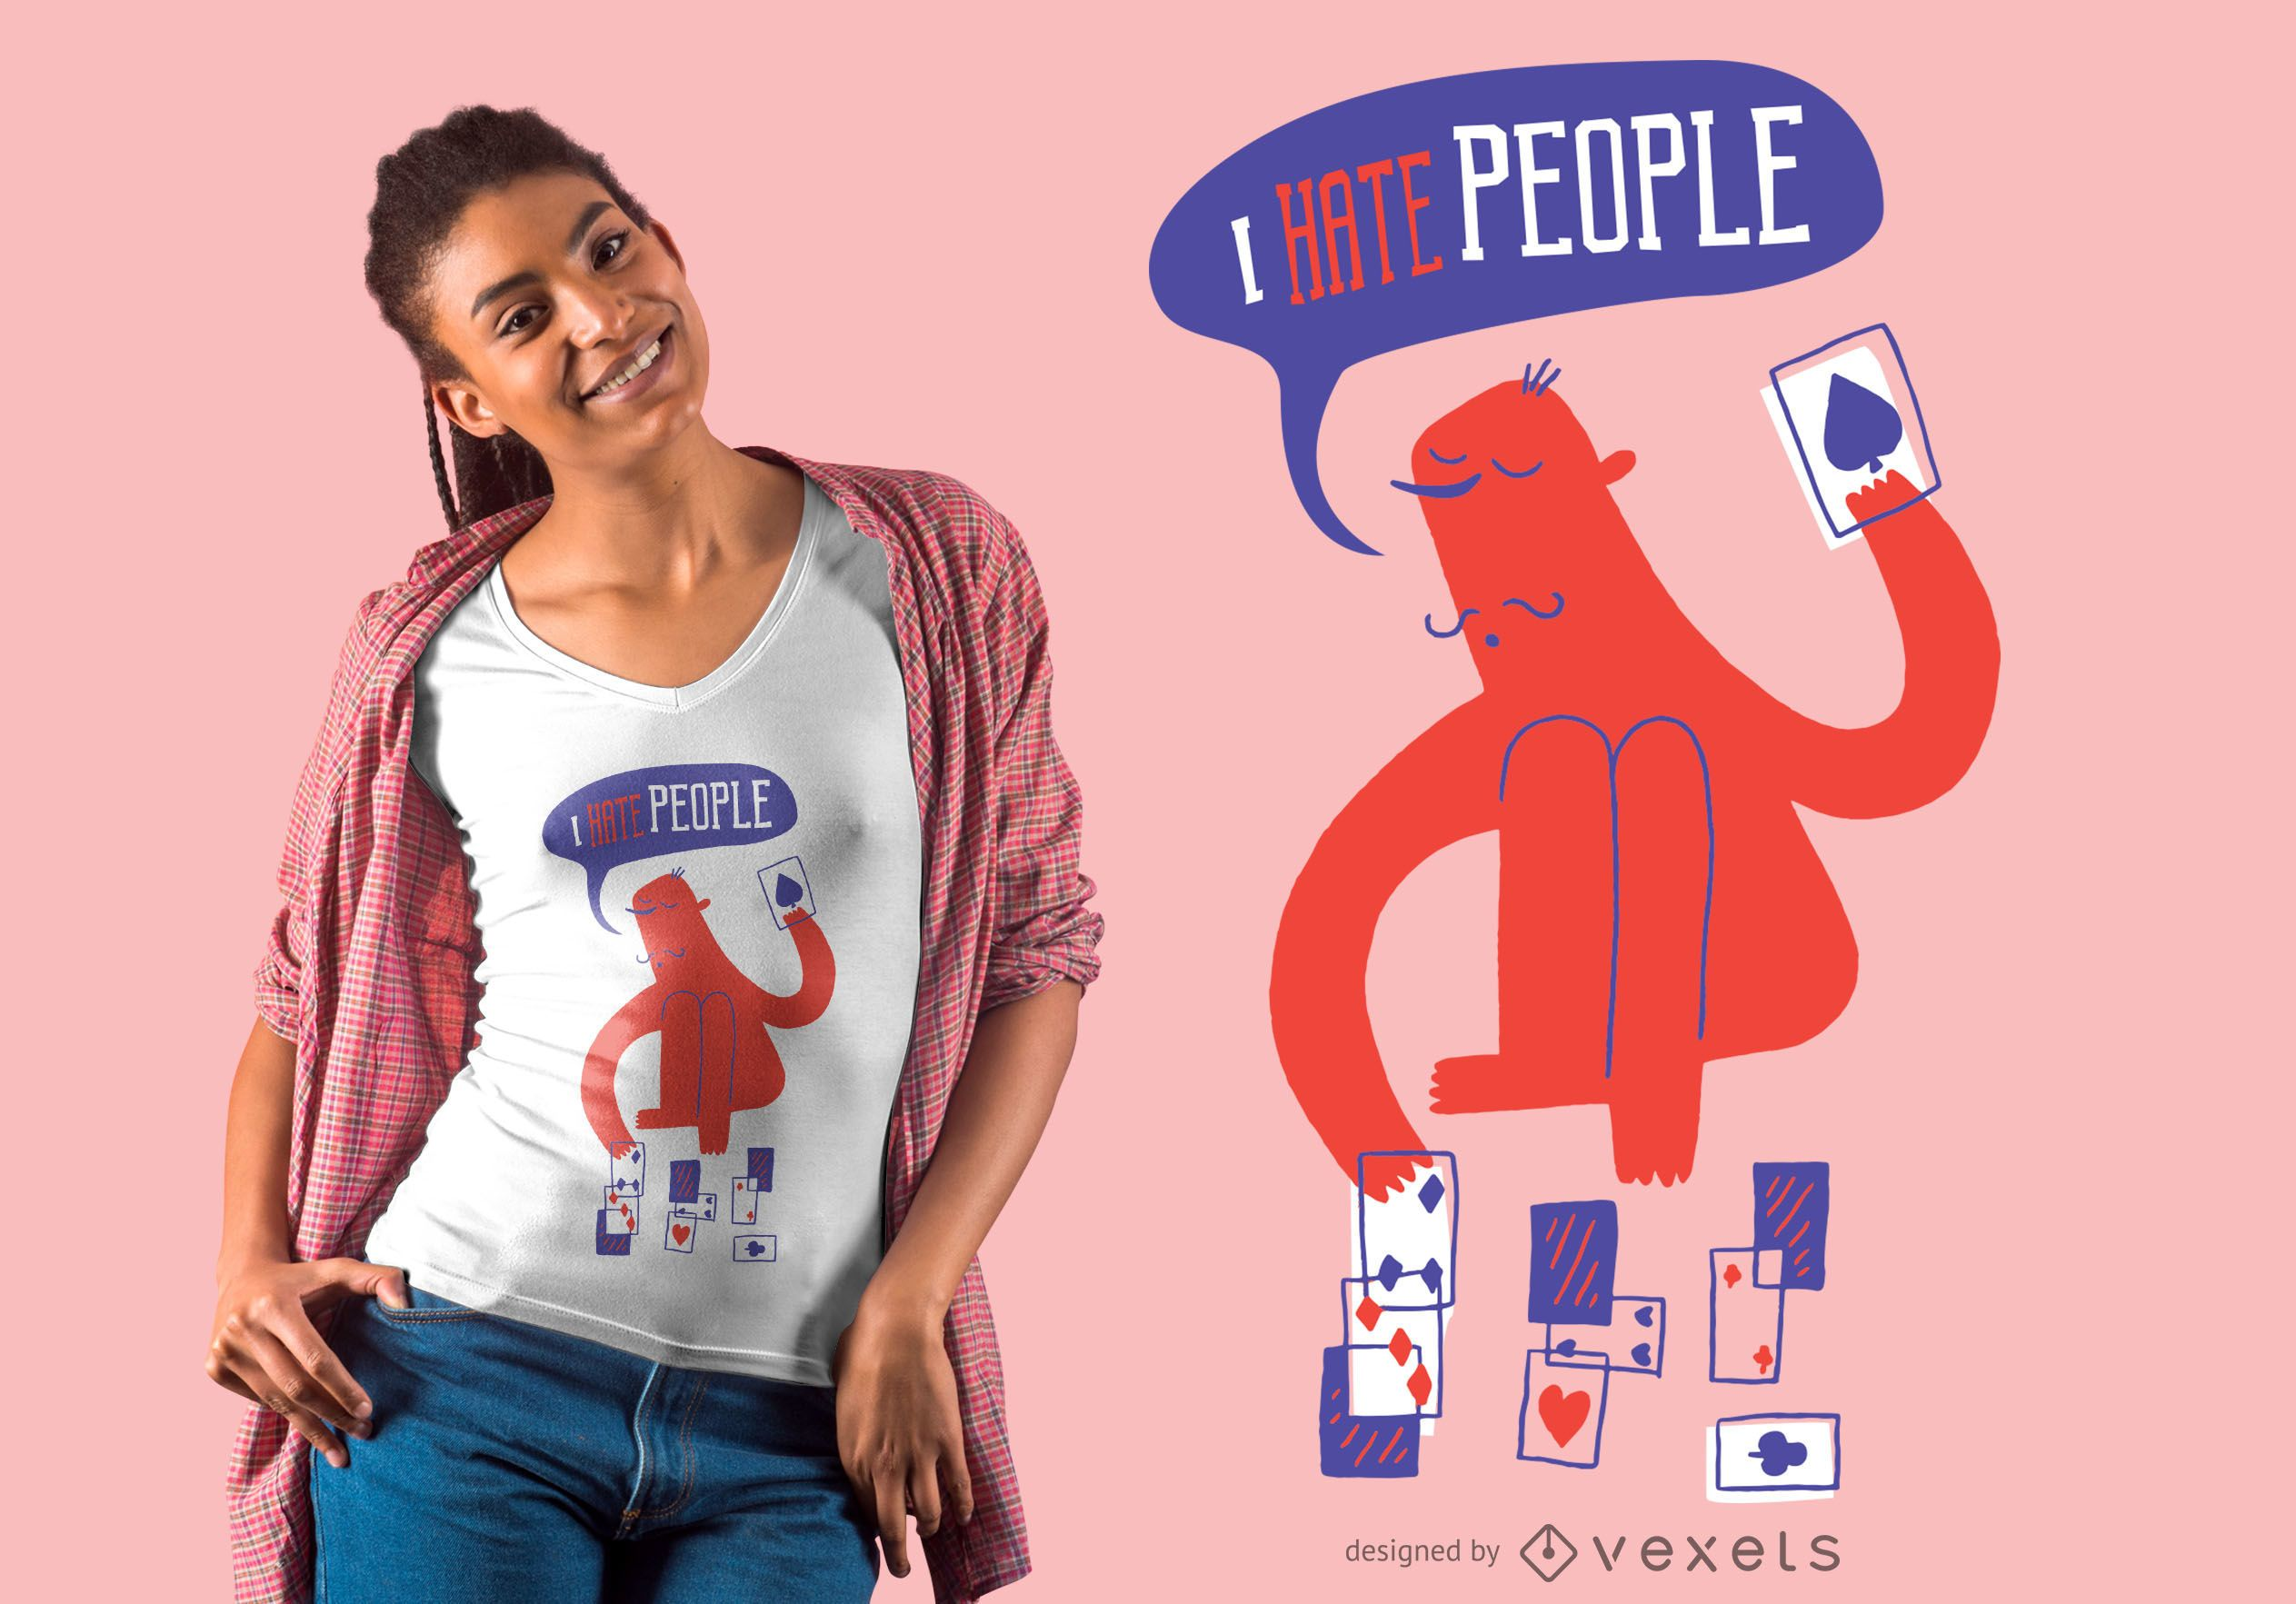 Hate people cards t-shirt design